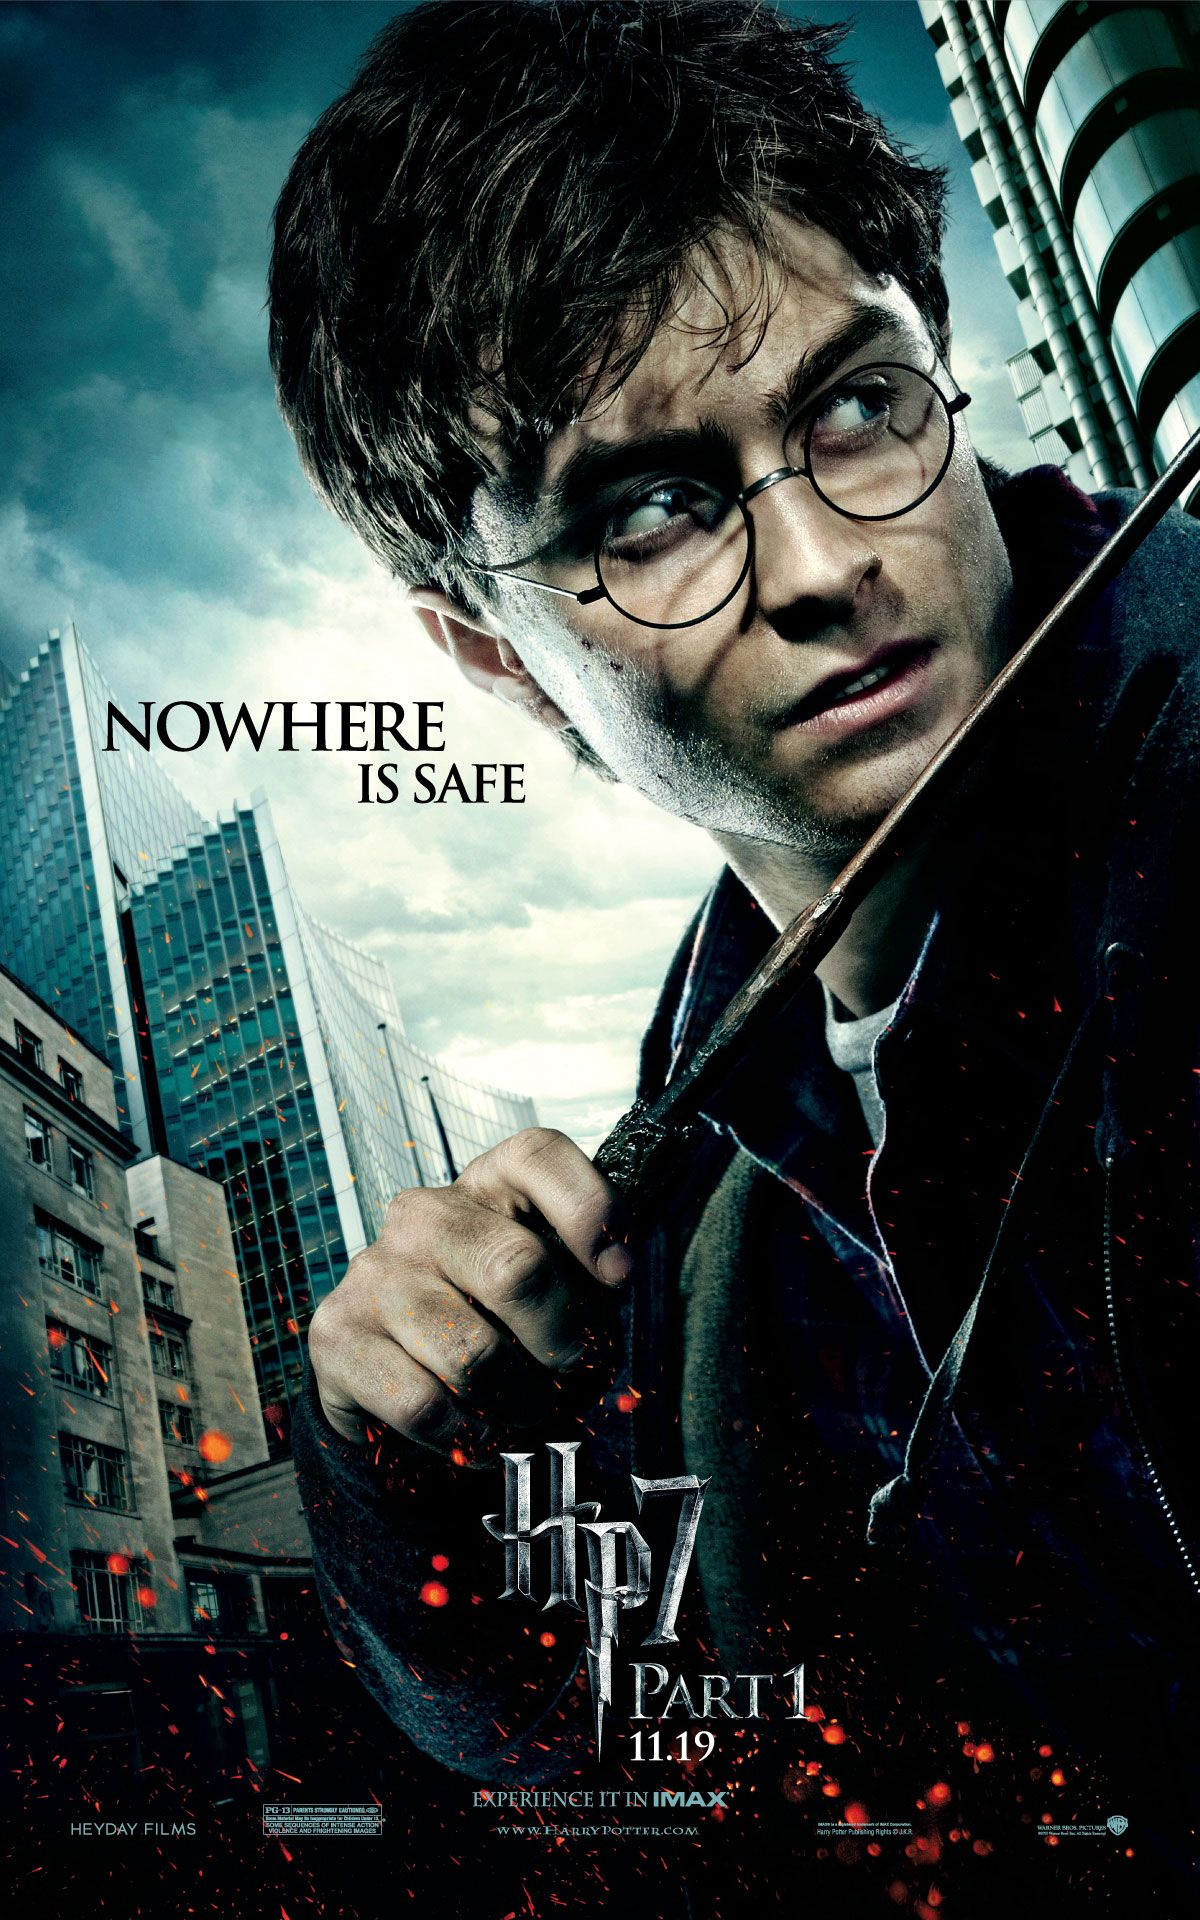 Harry Potter And The Deathly Hallows Part 1 Peliculas De Harry Potter Poster De Peliculas Afiche De Harry Potter